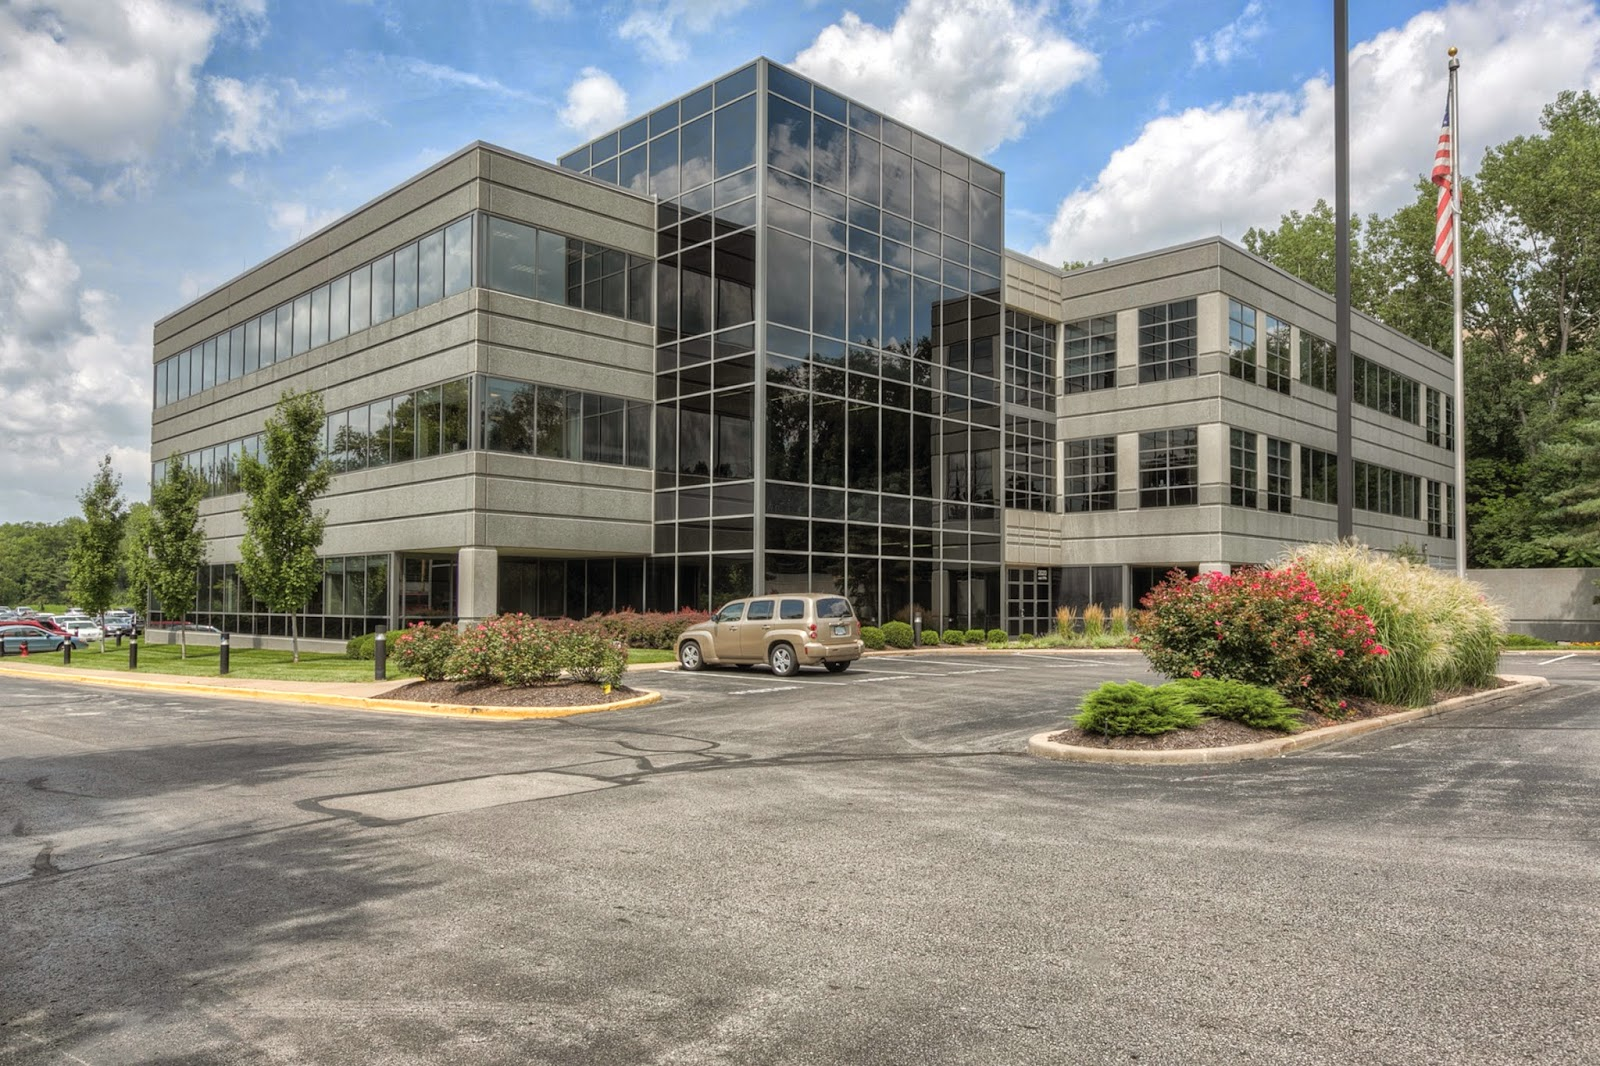 2020 W. 89th Leawood Kansas - Deal of the week